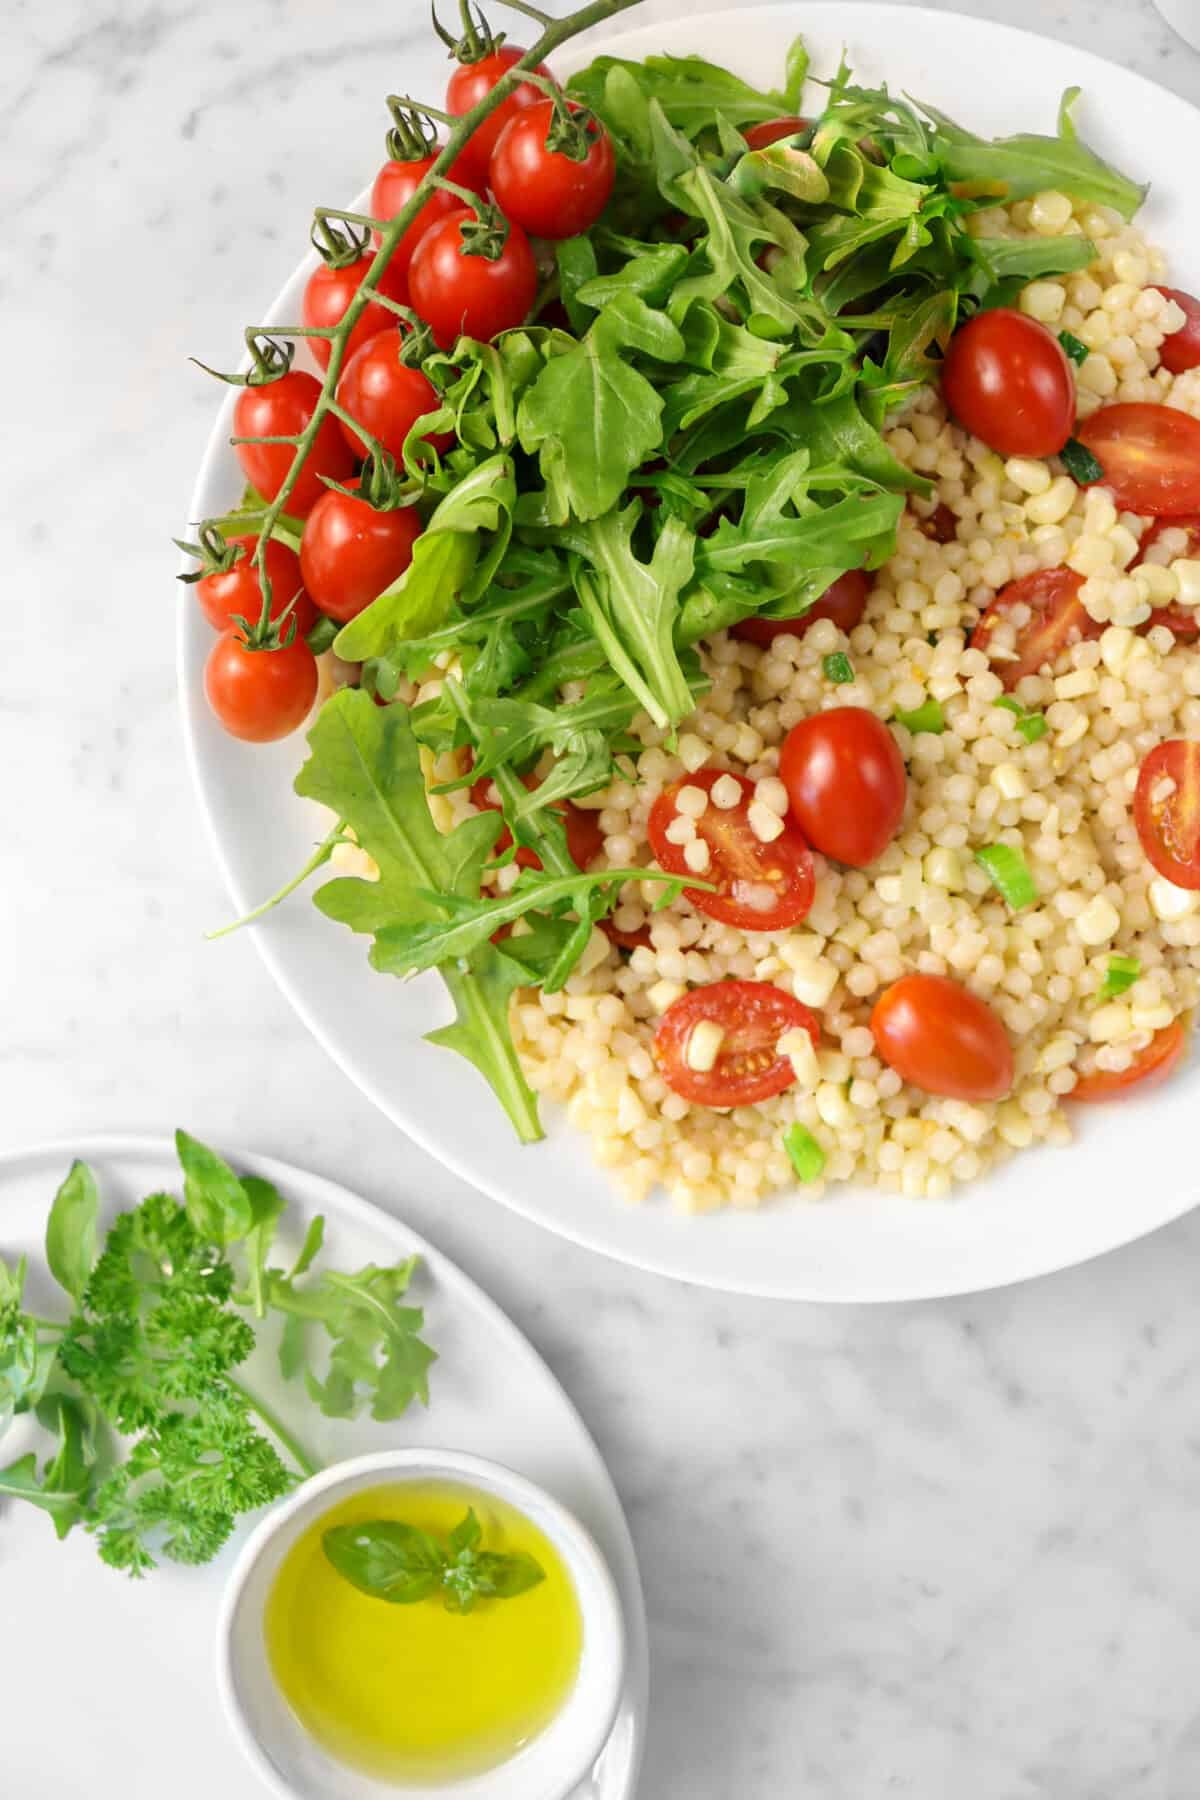 corn and tomato couscous salad with arugula, tomato on the vine, a bowl of oil, and herbs